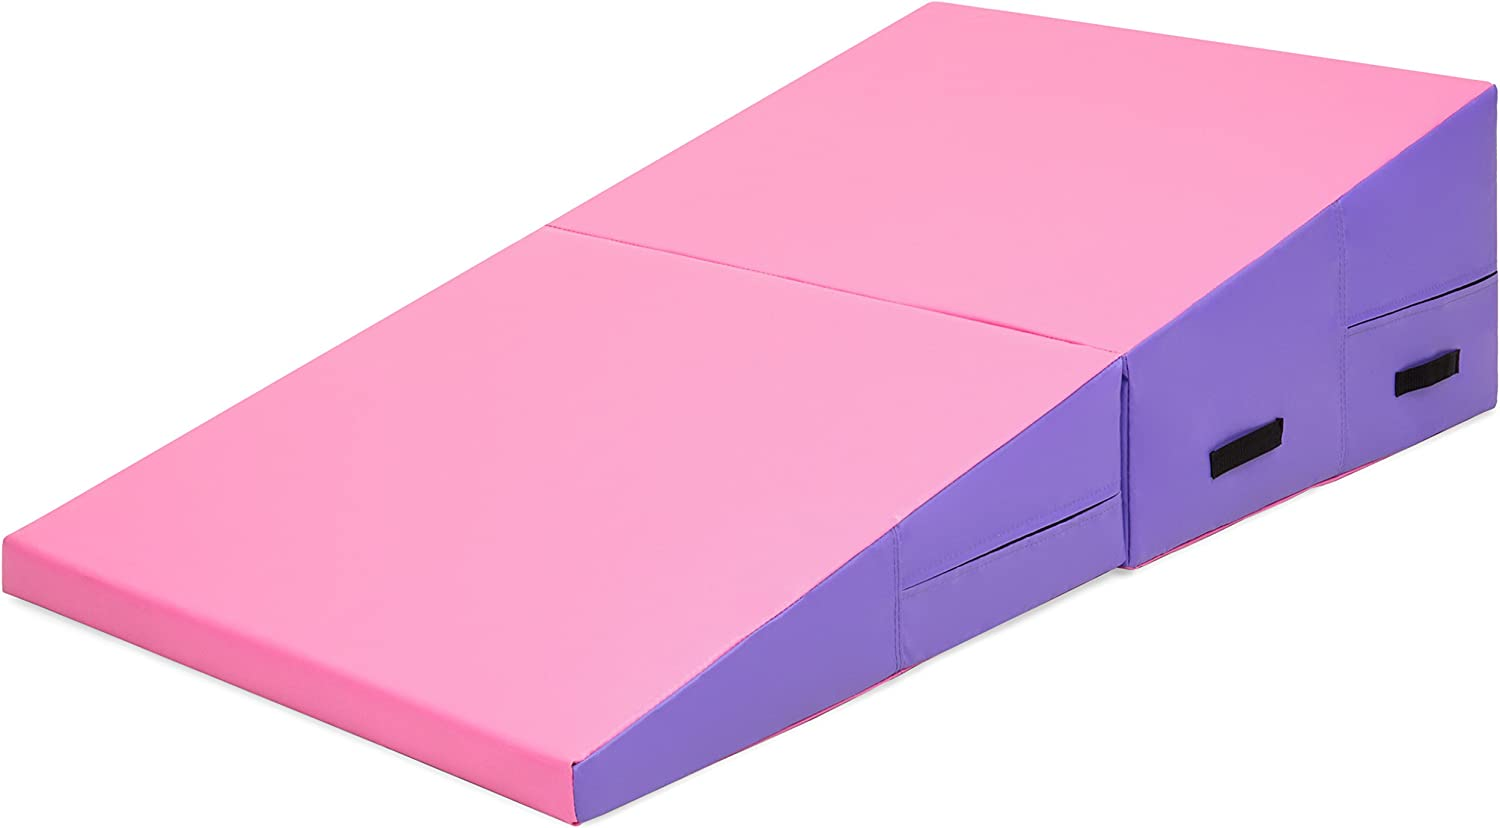 Best Choice Products 71x30x14in Kids Folding 2-Panel Cheese Wedge Incline Gym Mat for Tumbling with Handles